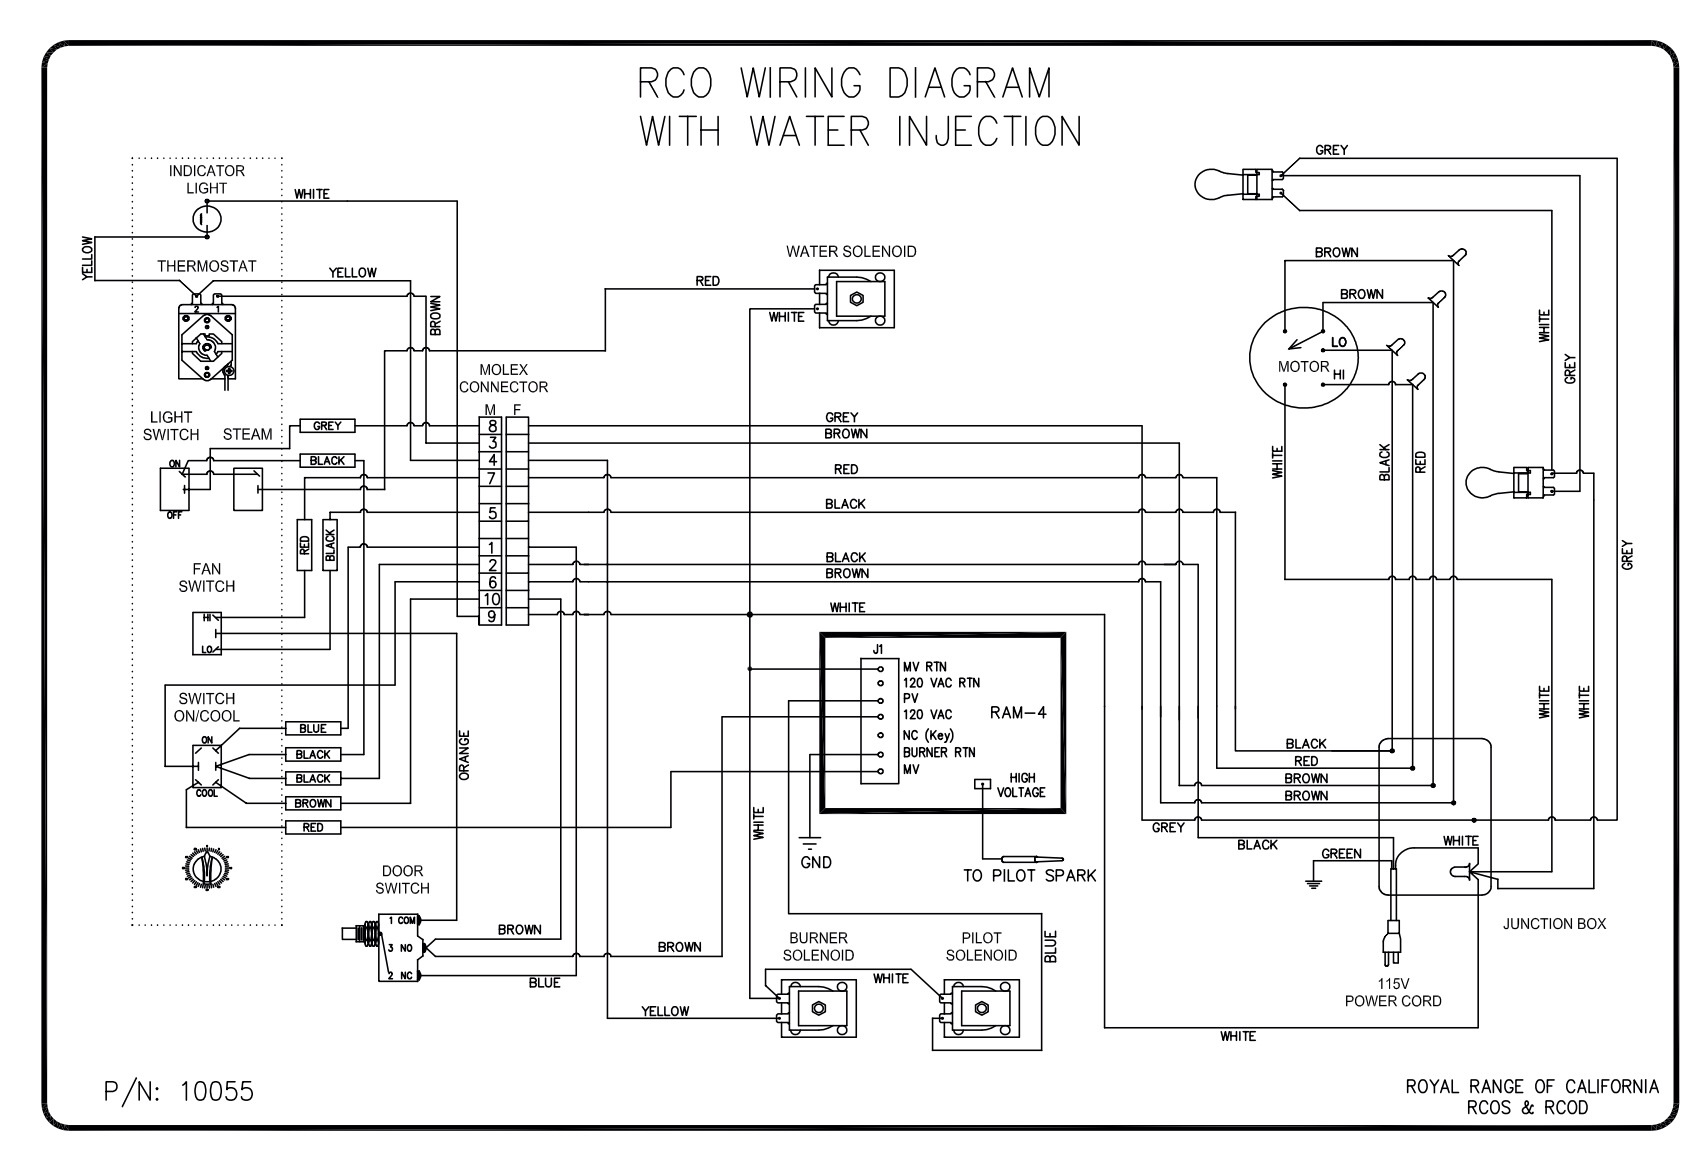 wiring diagrams royal range of california rh royalranges com 120 208 Volt Wiring Diagram 480 Volt Lighting Wiring Diagram